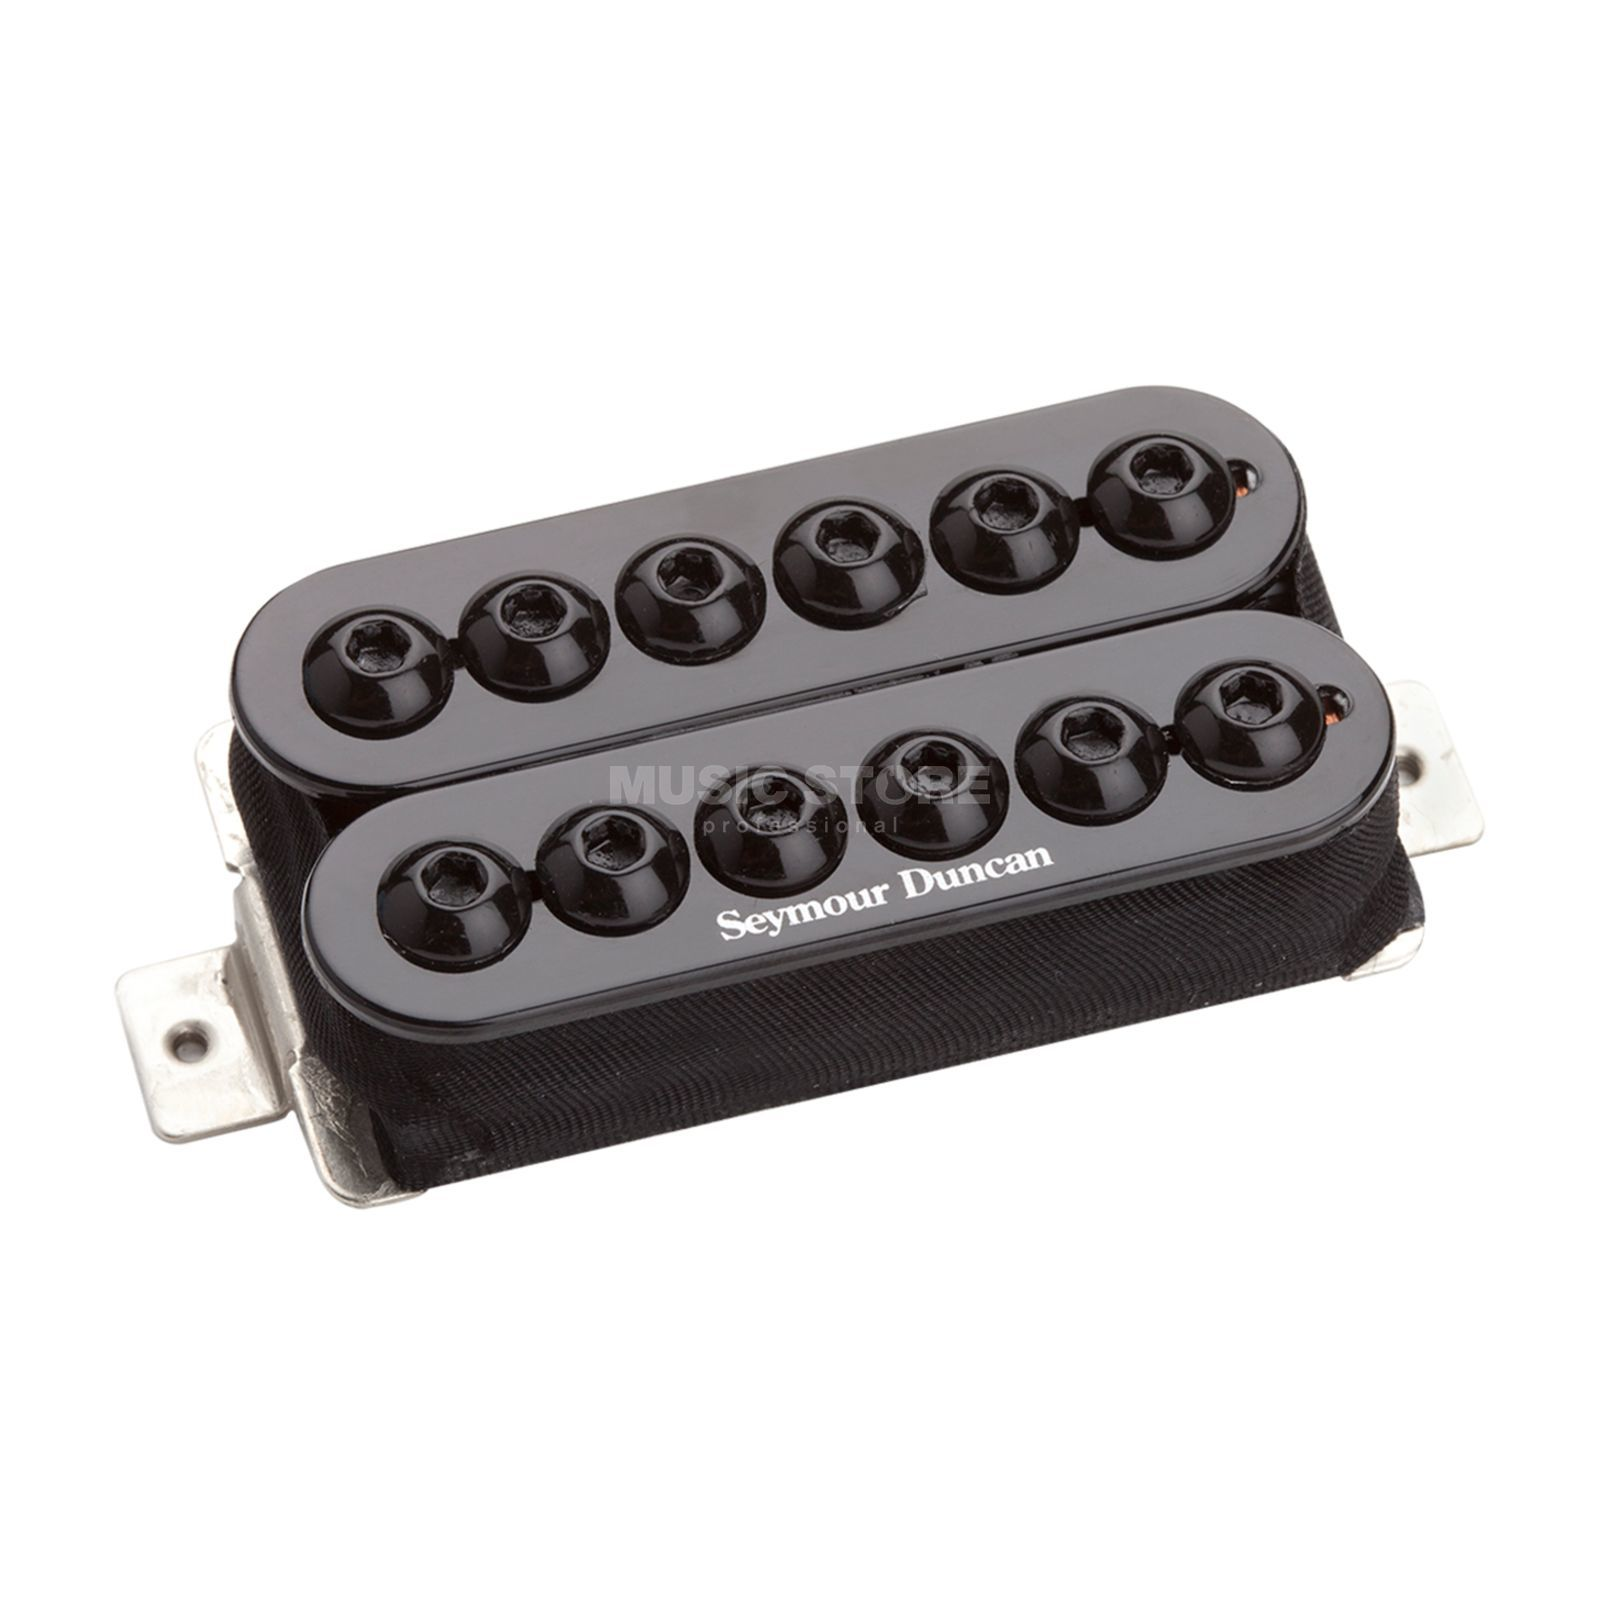 Seymour Duncan Invader Modell Bridge black 4-phase Produktbillede